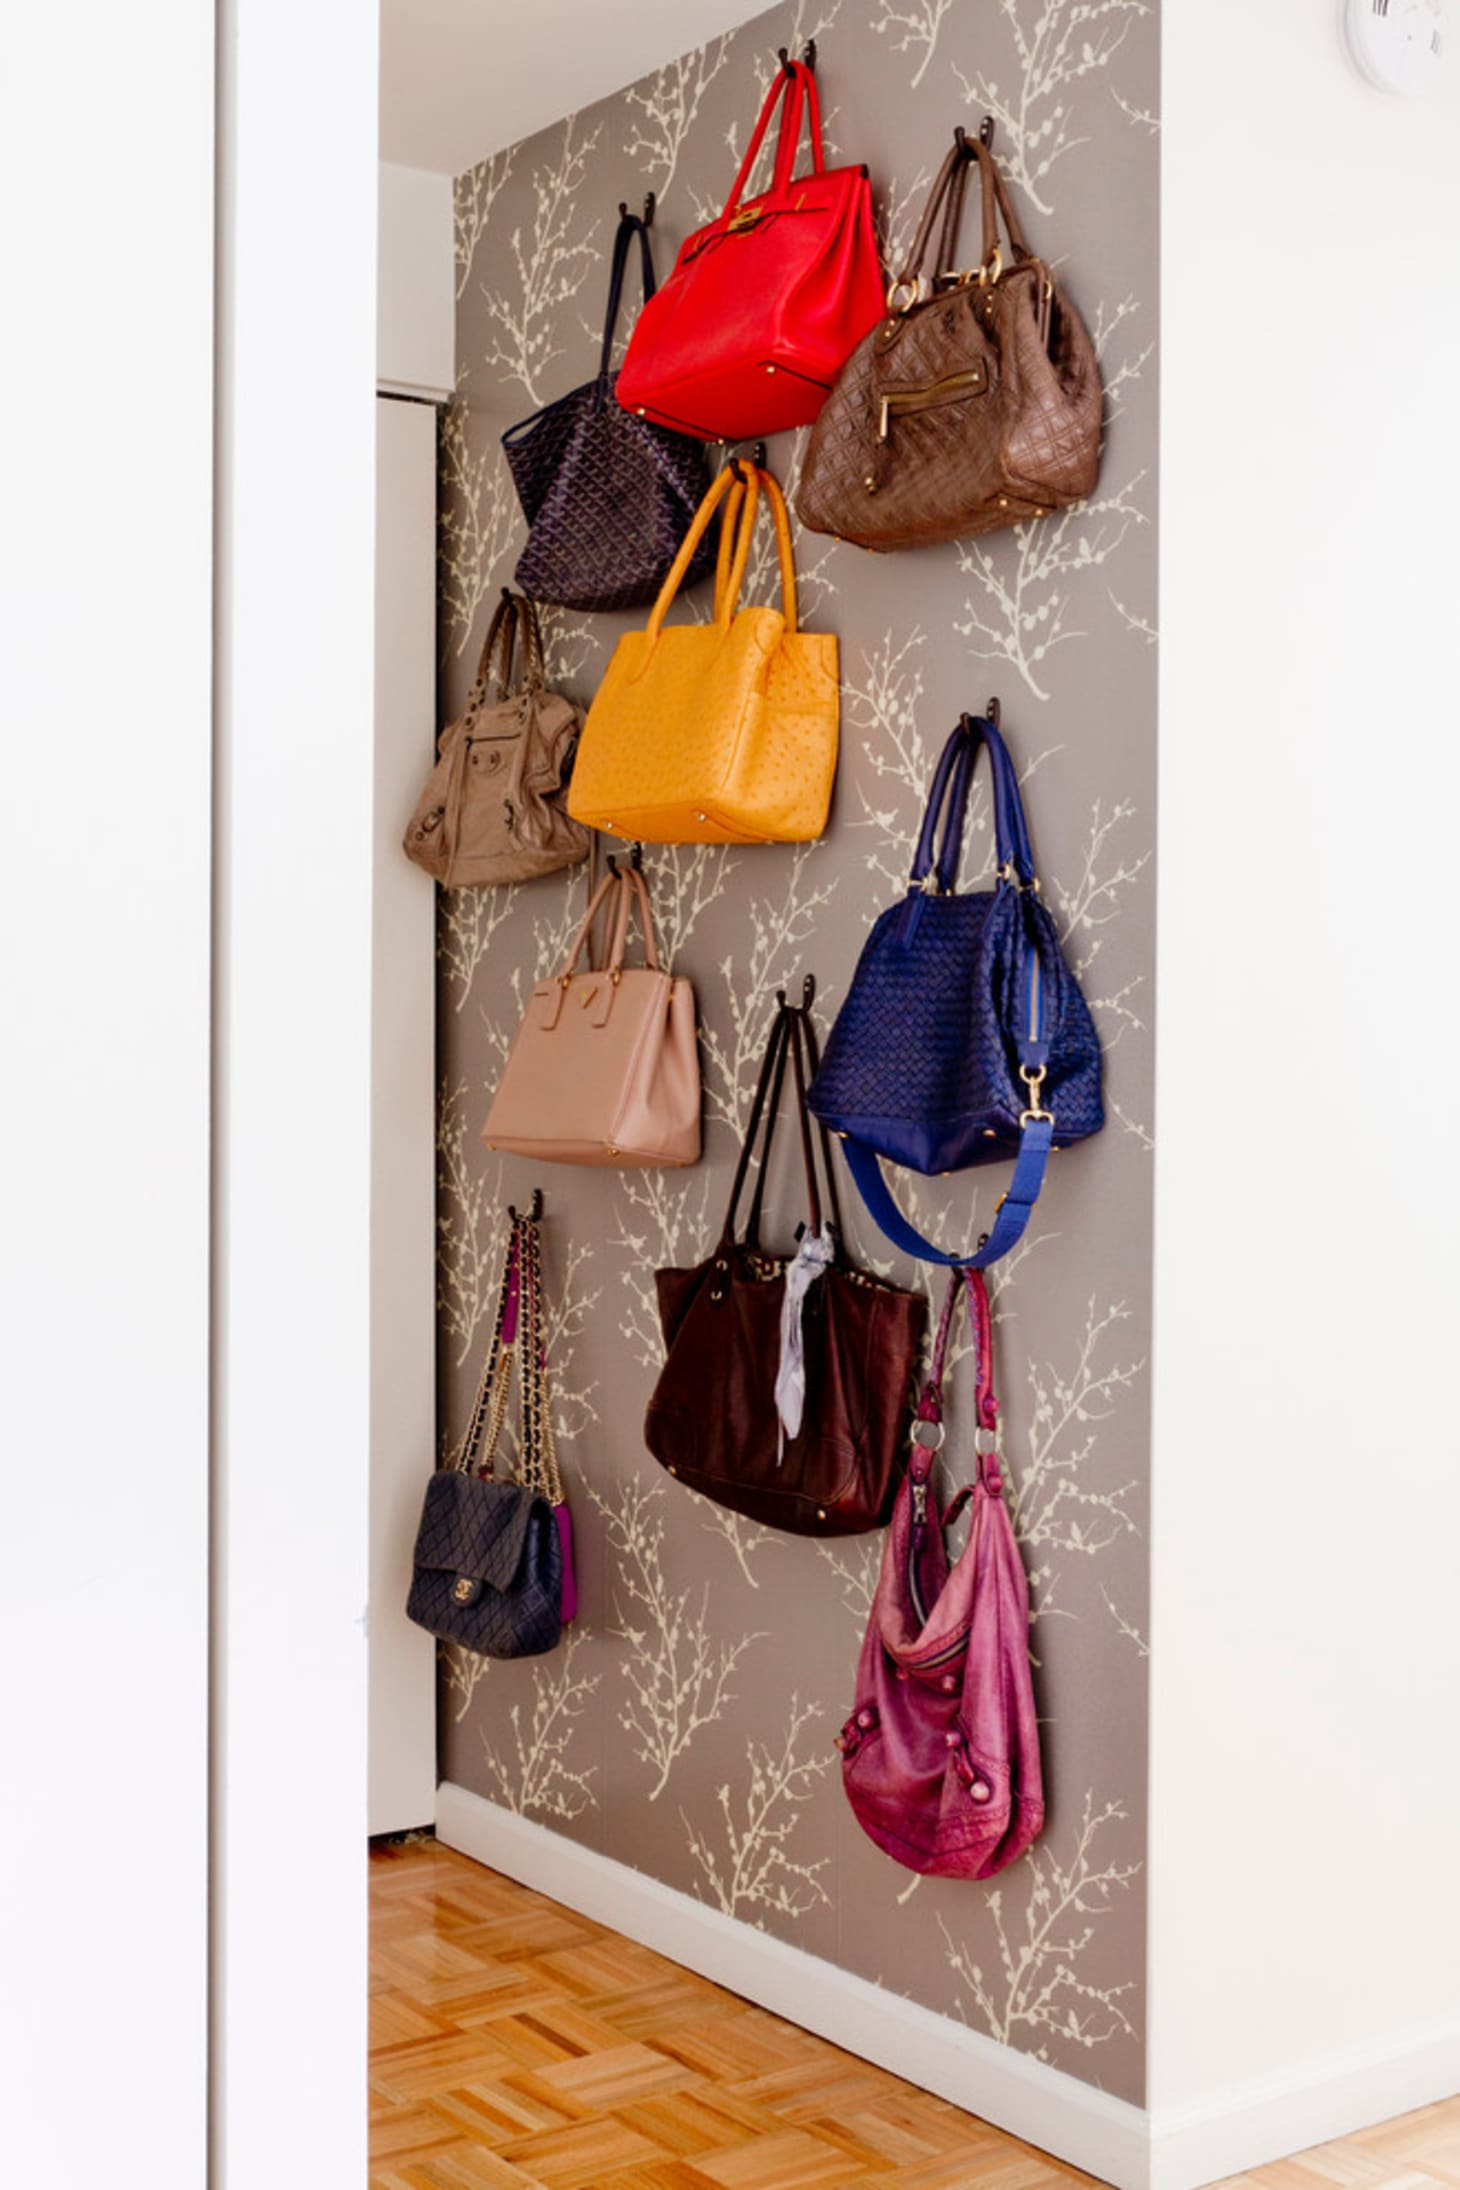 59427d5950 Purse Storage Options to Buy or DIY | Apartment Therapy